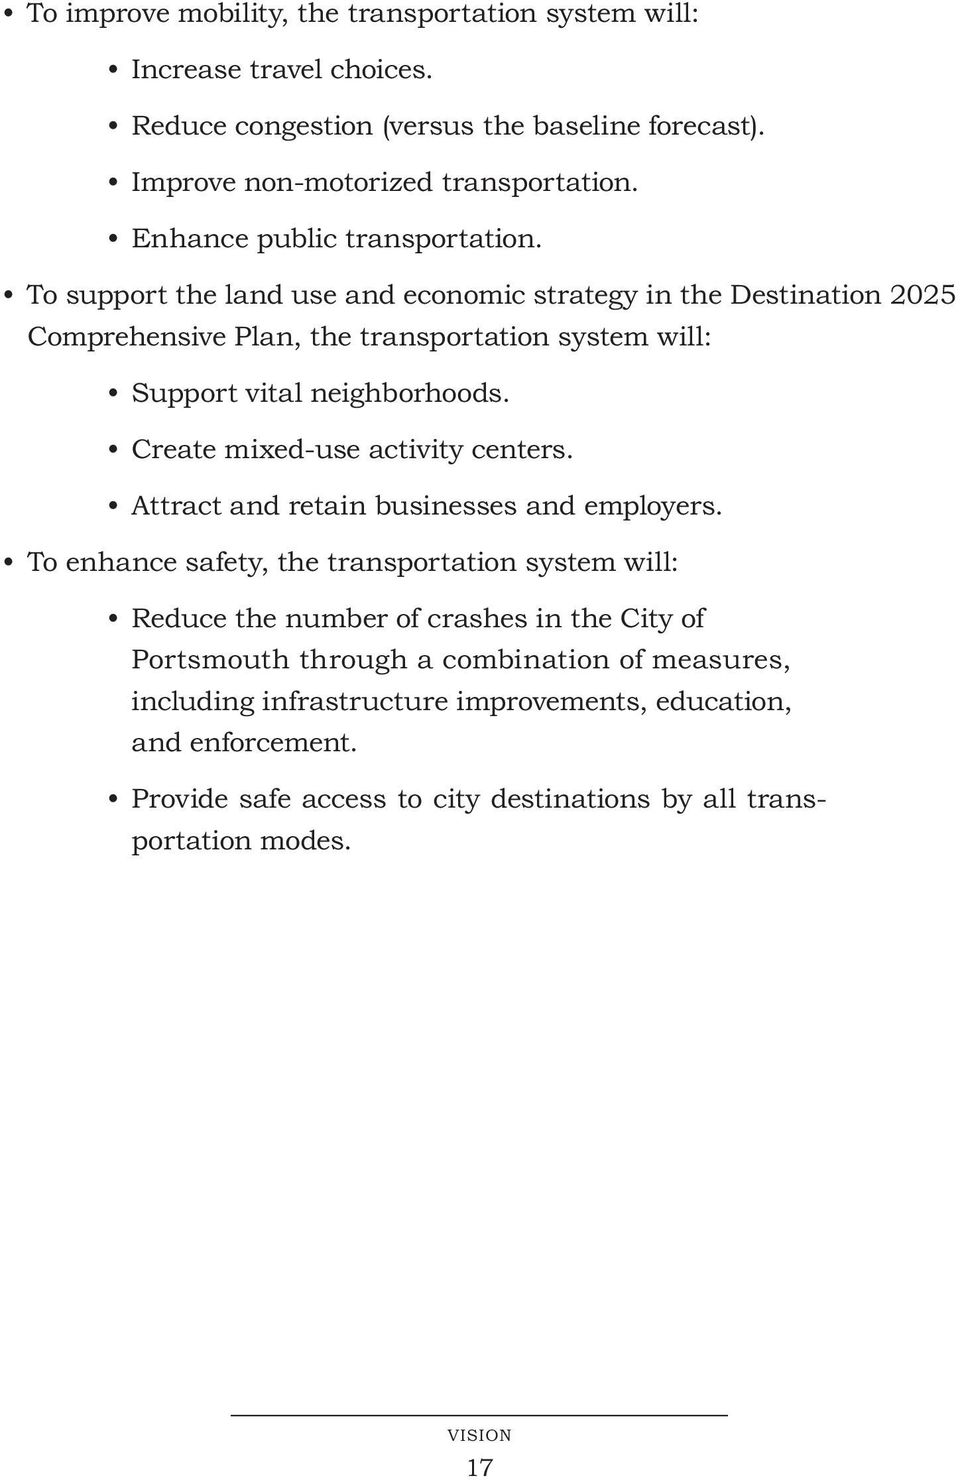 To support the land use and economic strategy in the Destination 2025 Comprehensive Plan, the transportation system will: Support vital neighborhoods.